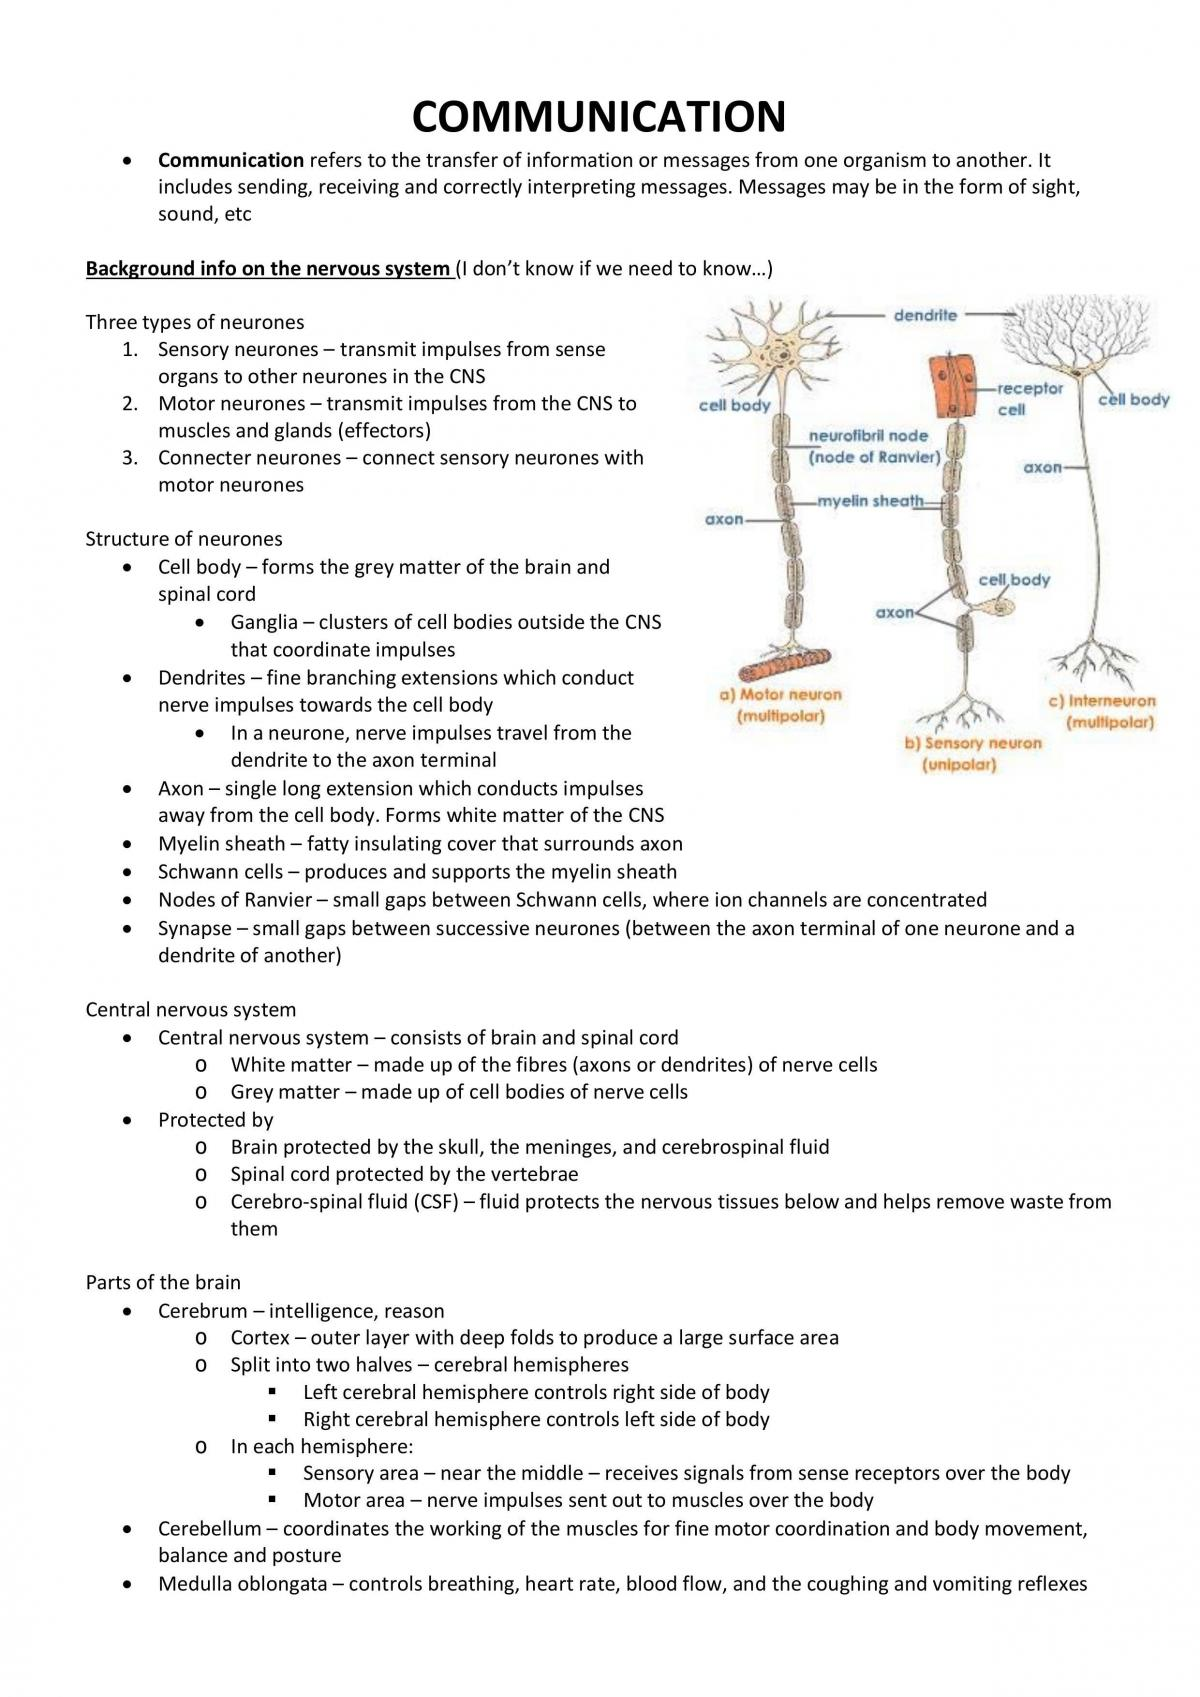 Biology Topic- Communication Study Notes - Page 1